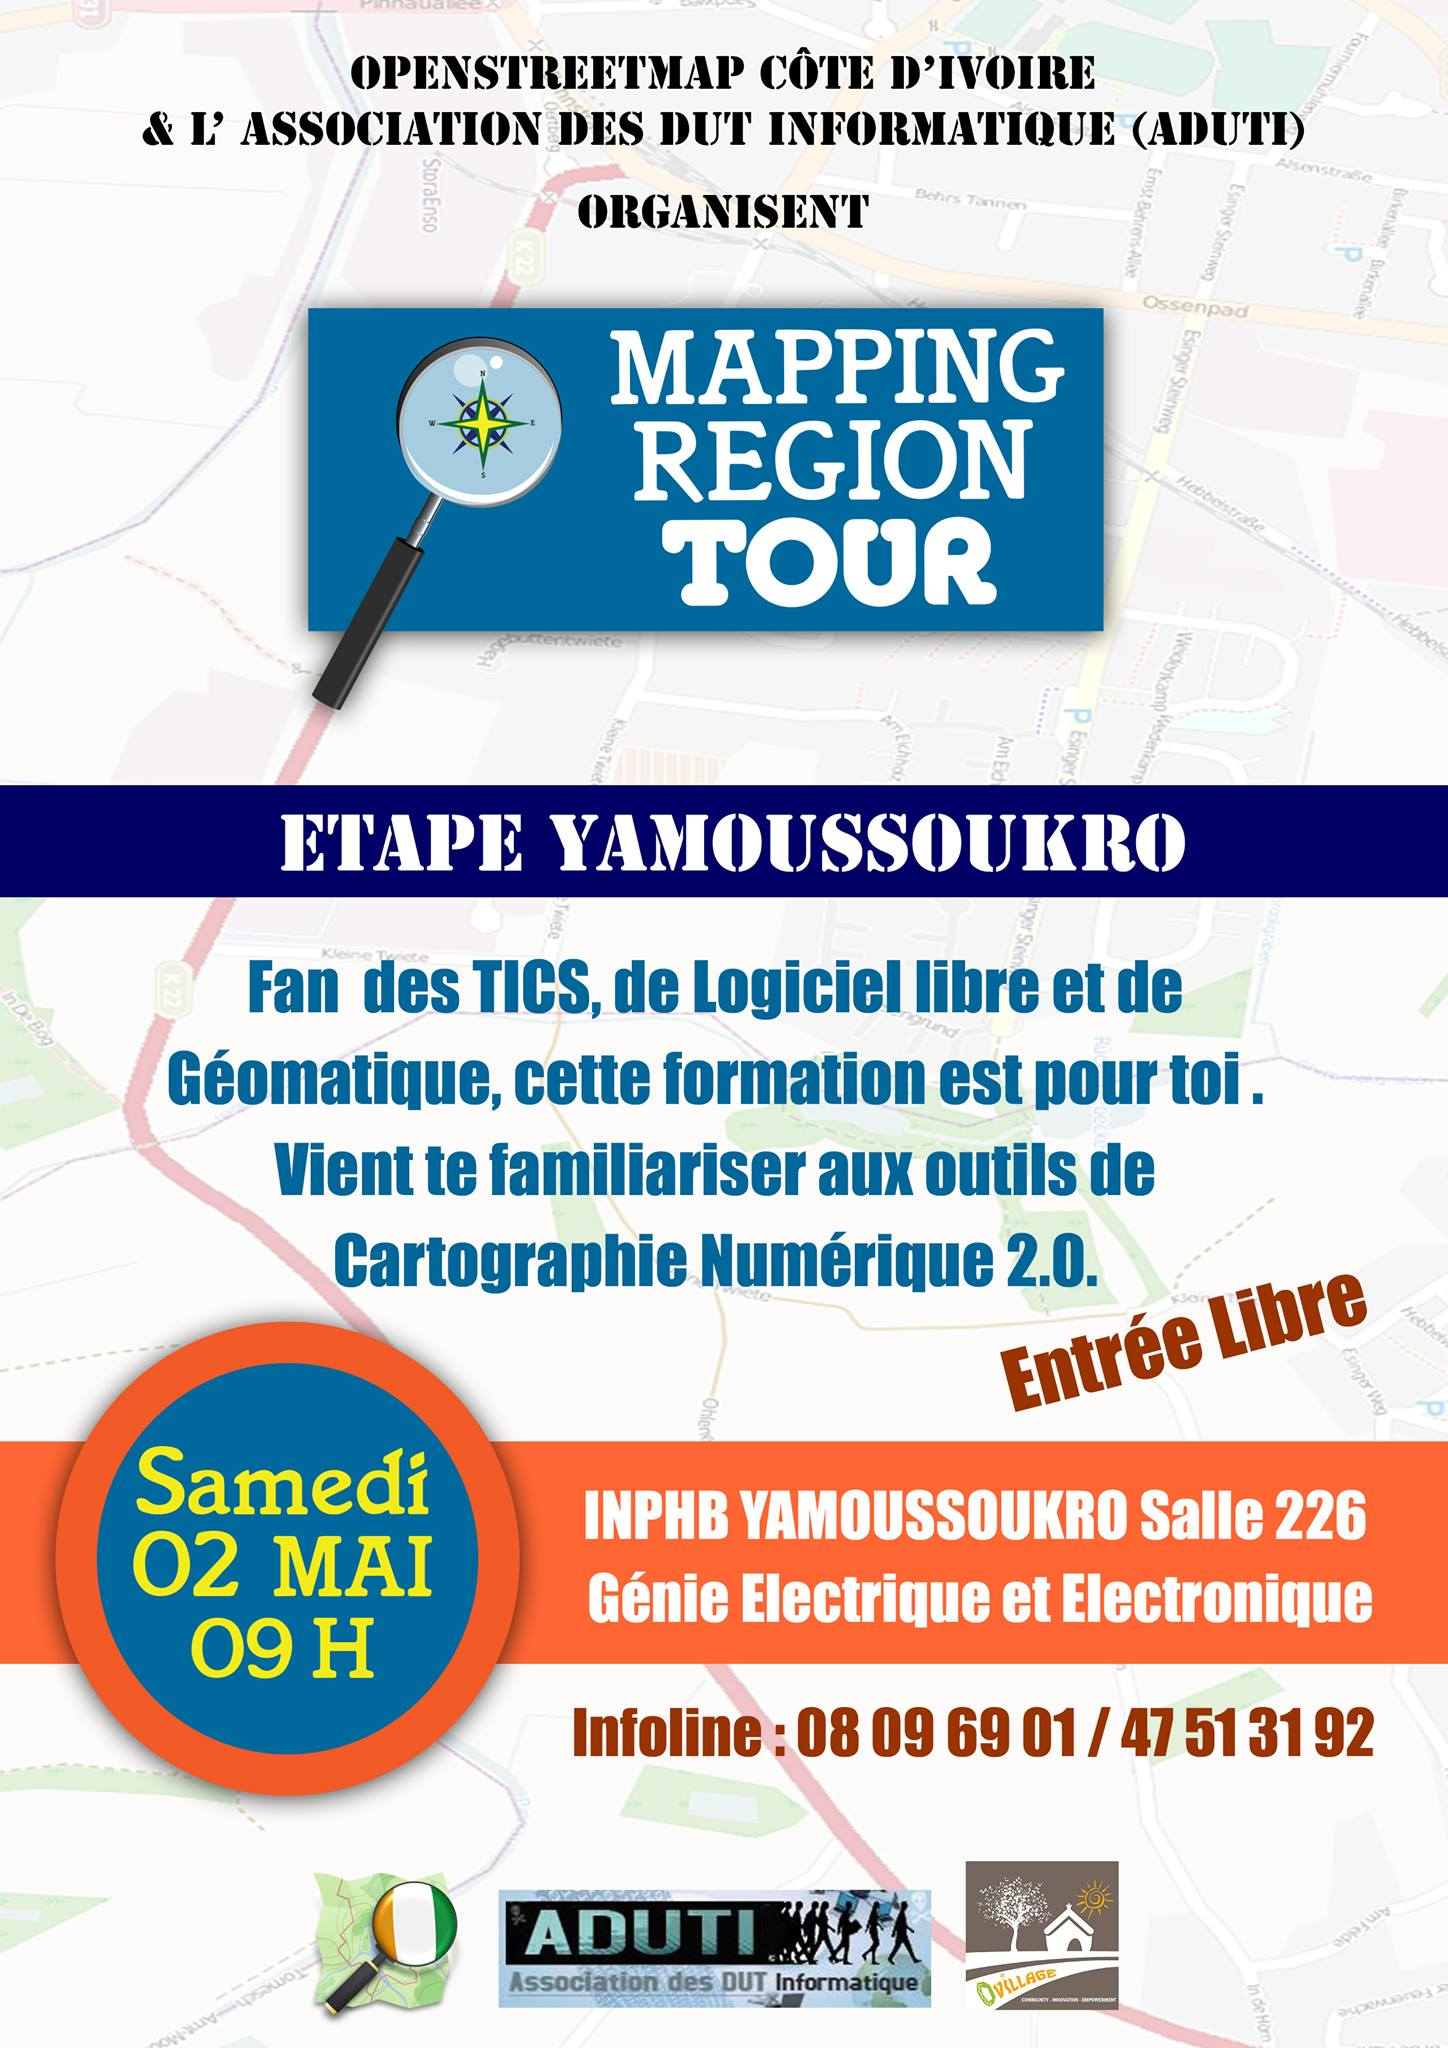 Mapping Région Tour Etape Yamoussoukro.jpg